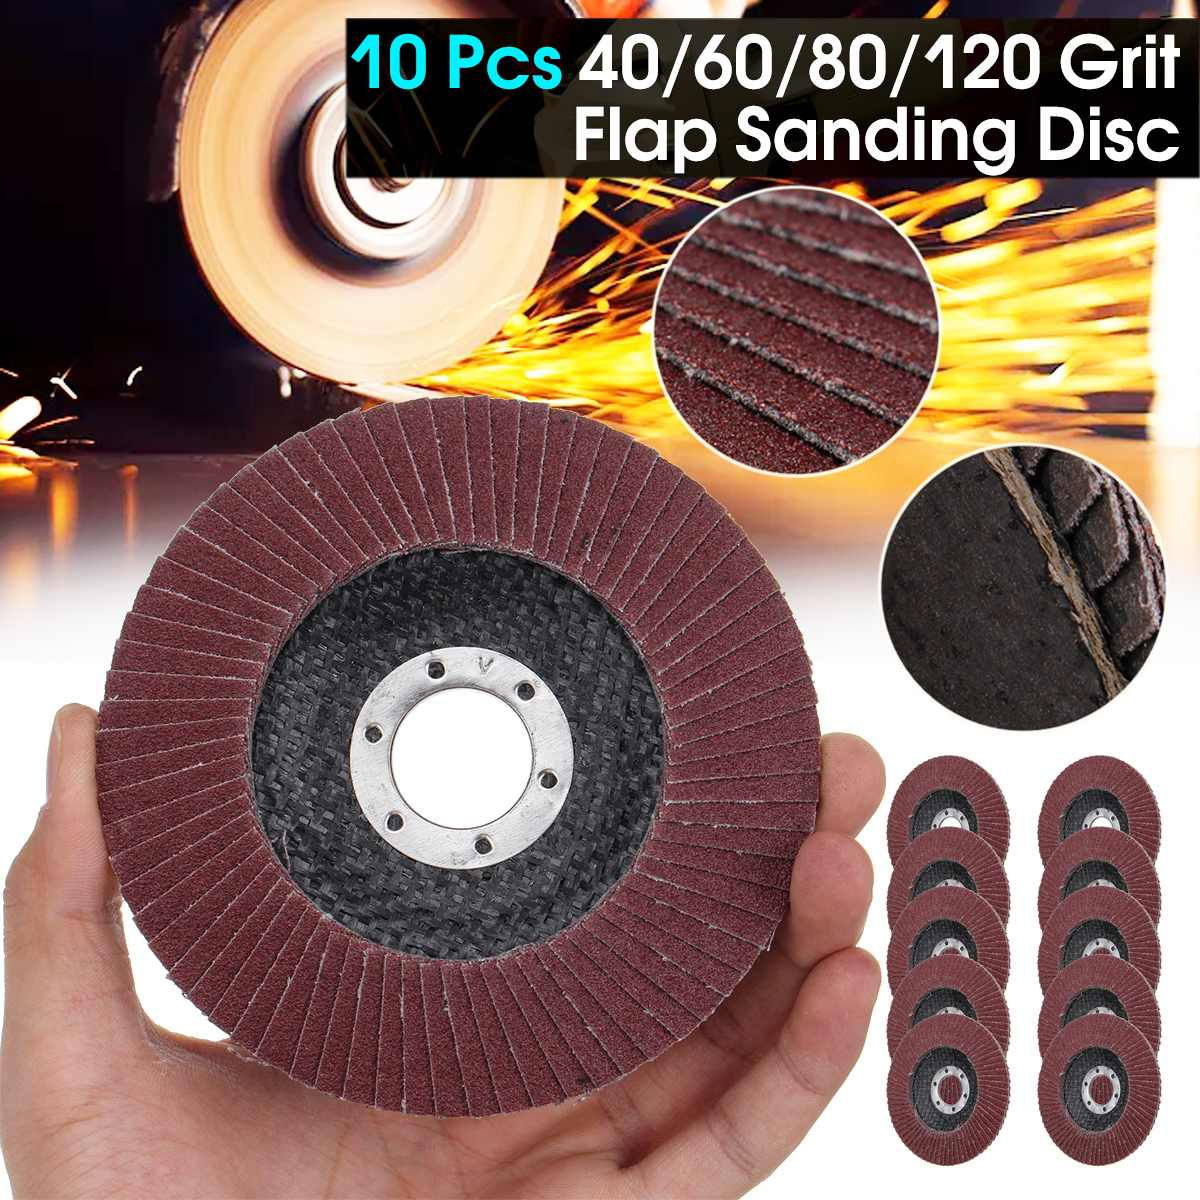 10PCS 40/60/80/120 Grit Grinding Wheels Flap Discs 125mm 115mm 4.5